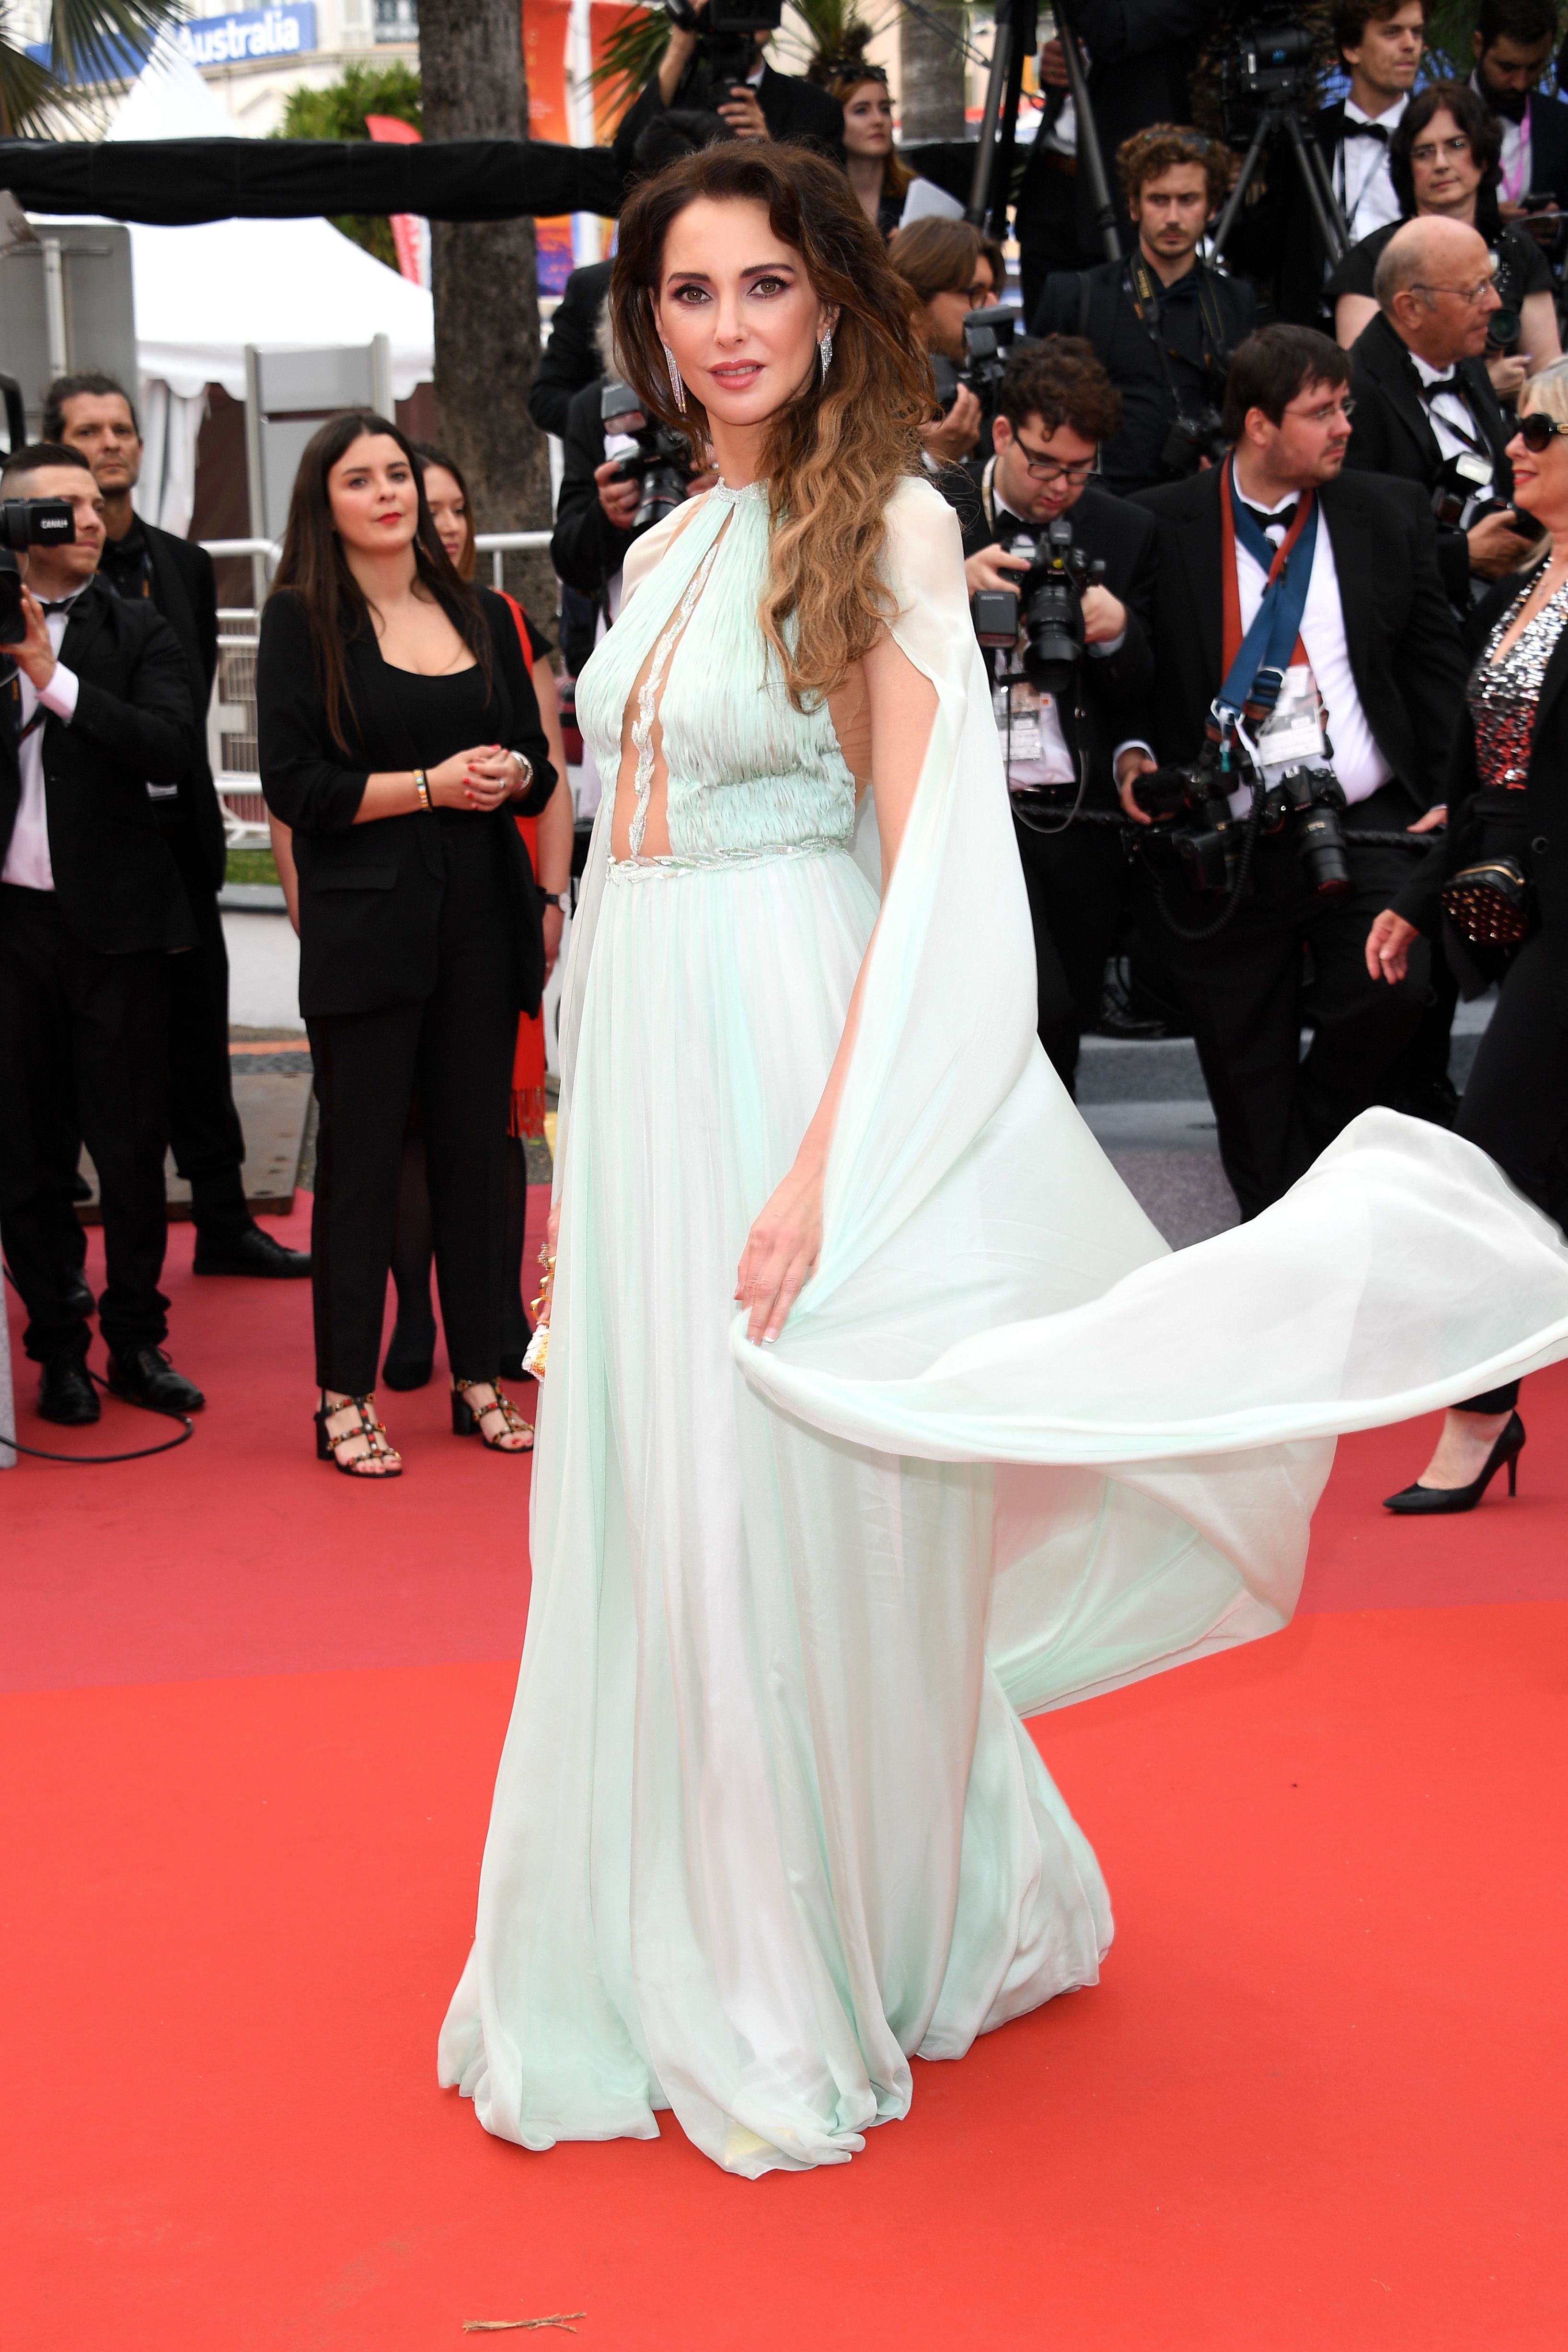 Frédérique Bel At the opening ceremony of the Cannes Film Festival and premiere of The Dead Don't Die .